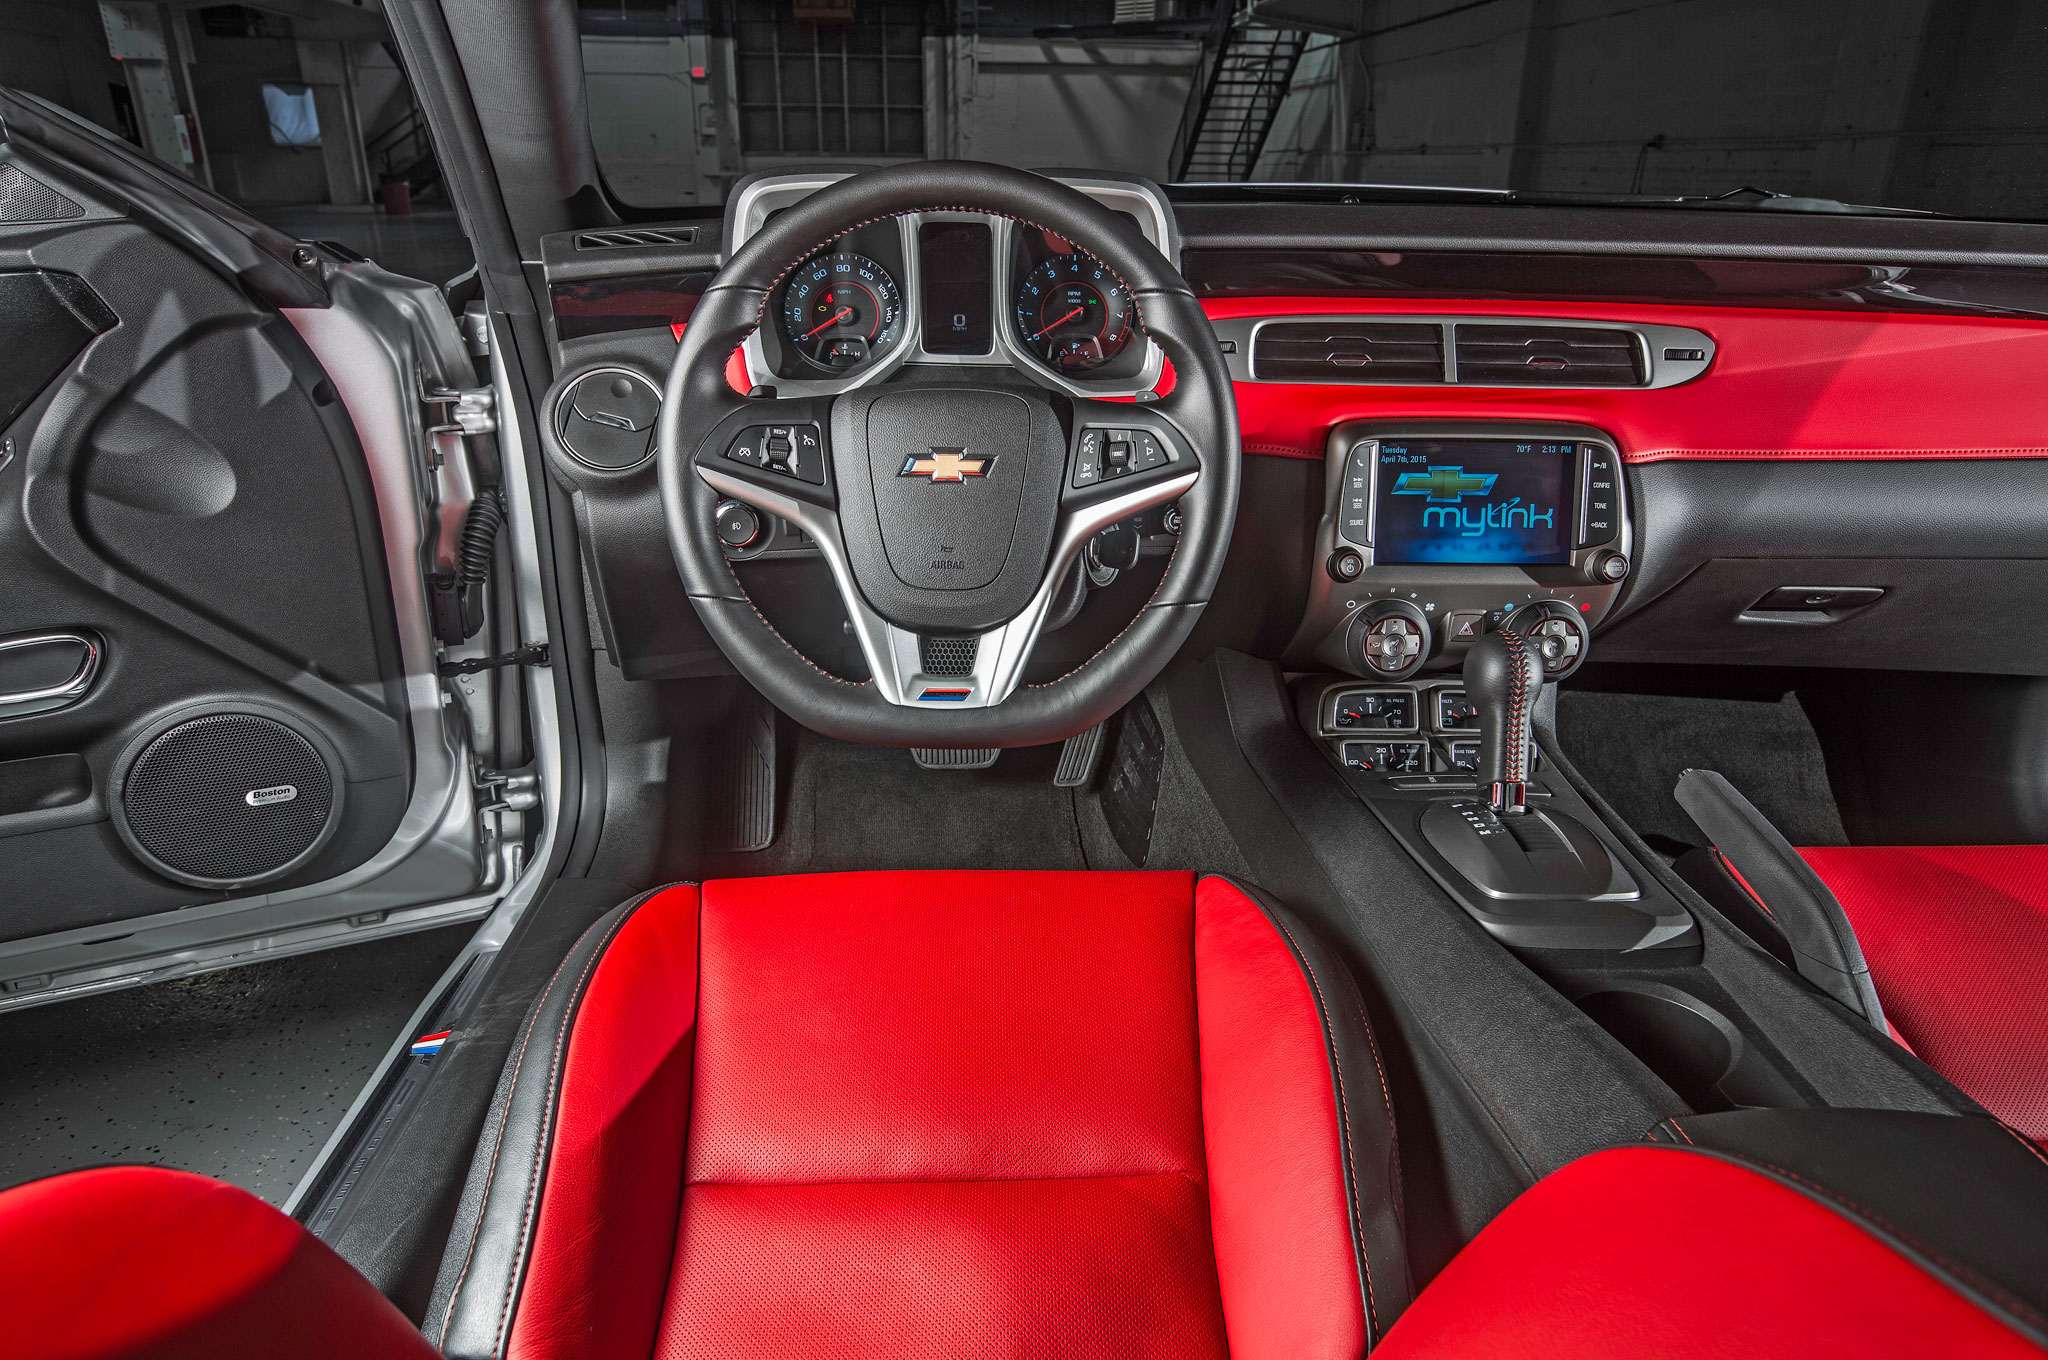 Chevy put a little more money and a lot more thought into the new cabin, above. Whereas the old interior, left, featured stylish but useless controls and gauges, the new dash is more clearly laid out. Designers paid particular attention to lowering the dashboard to improve outward visibility.